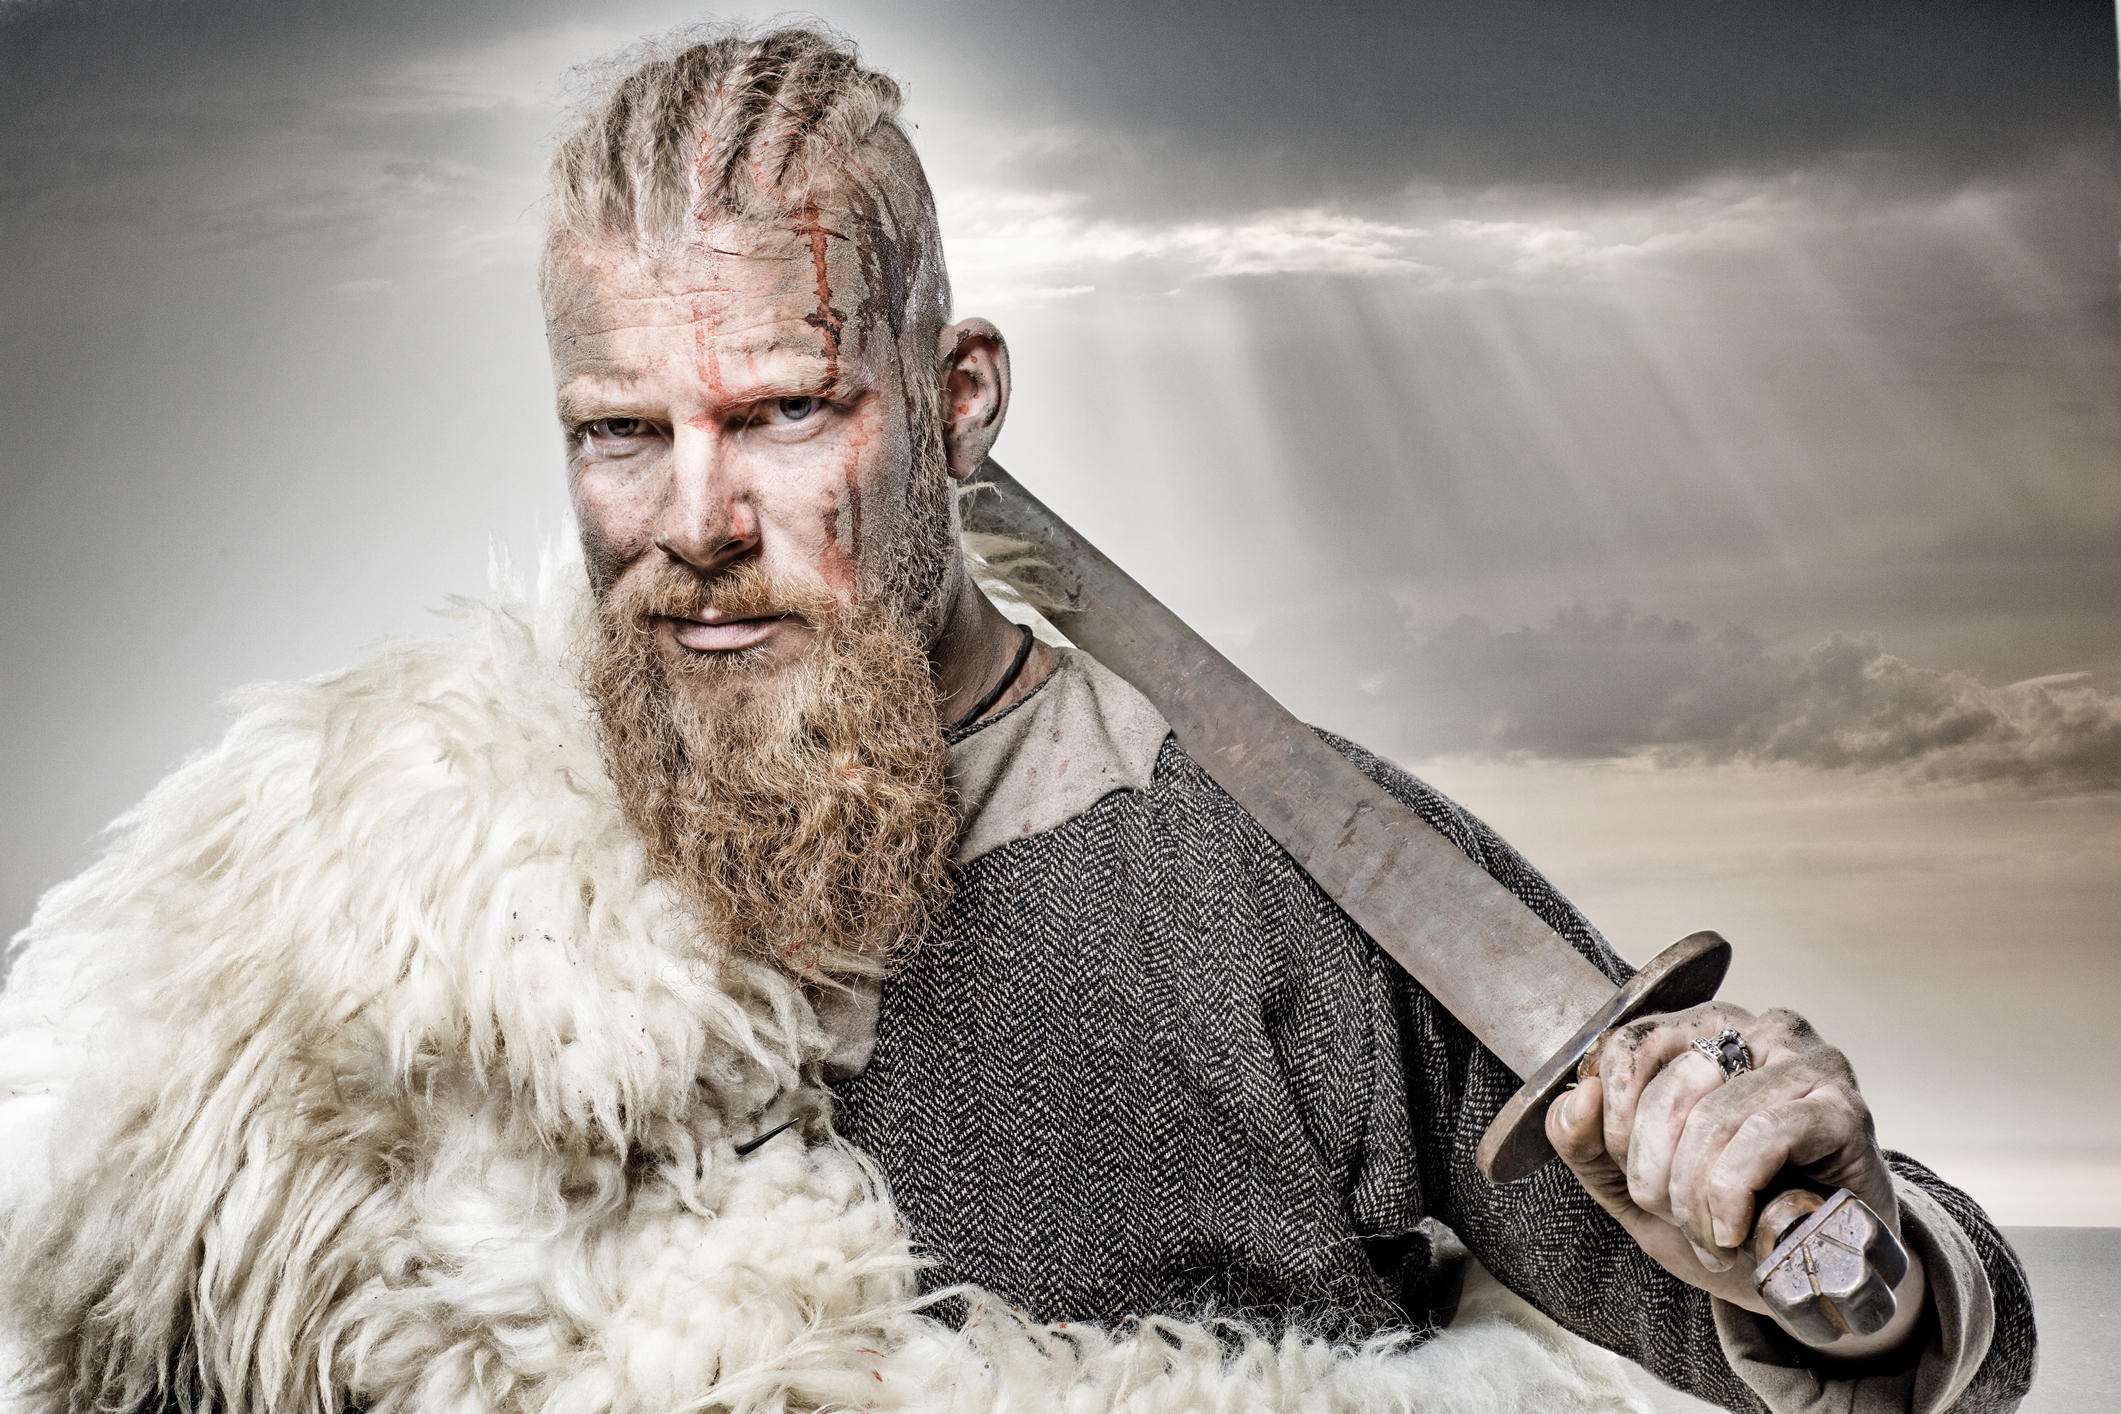 Frisuren in vikings